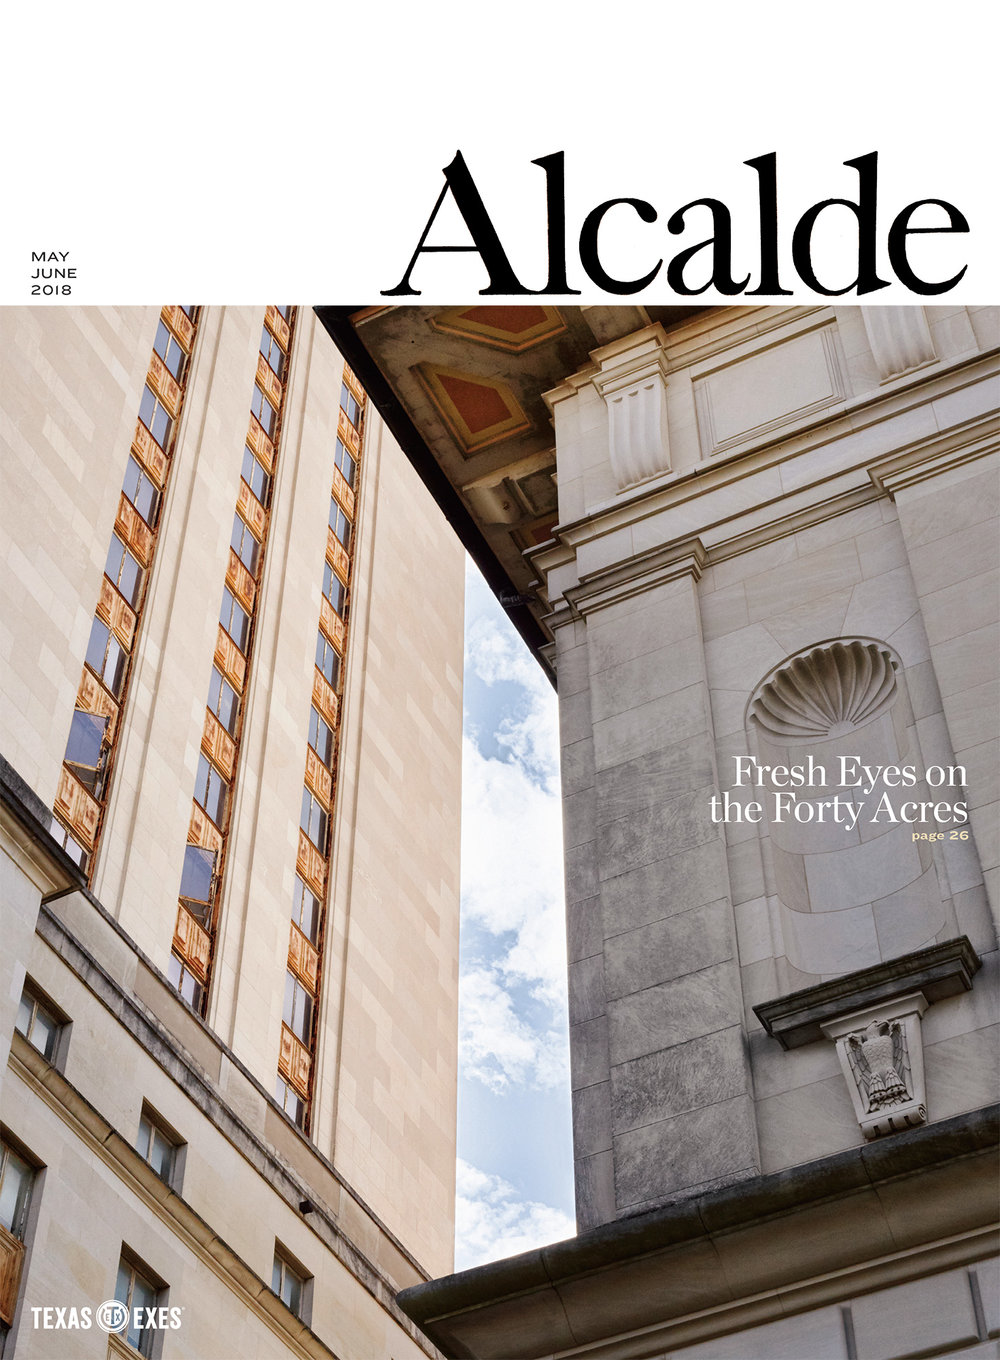 The Alcalde // May June 2018 // Cover